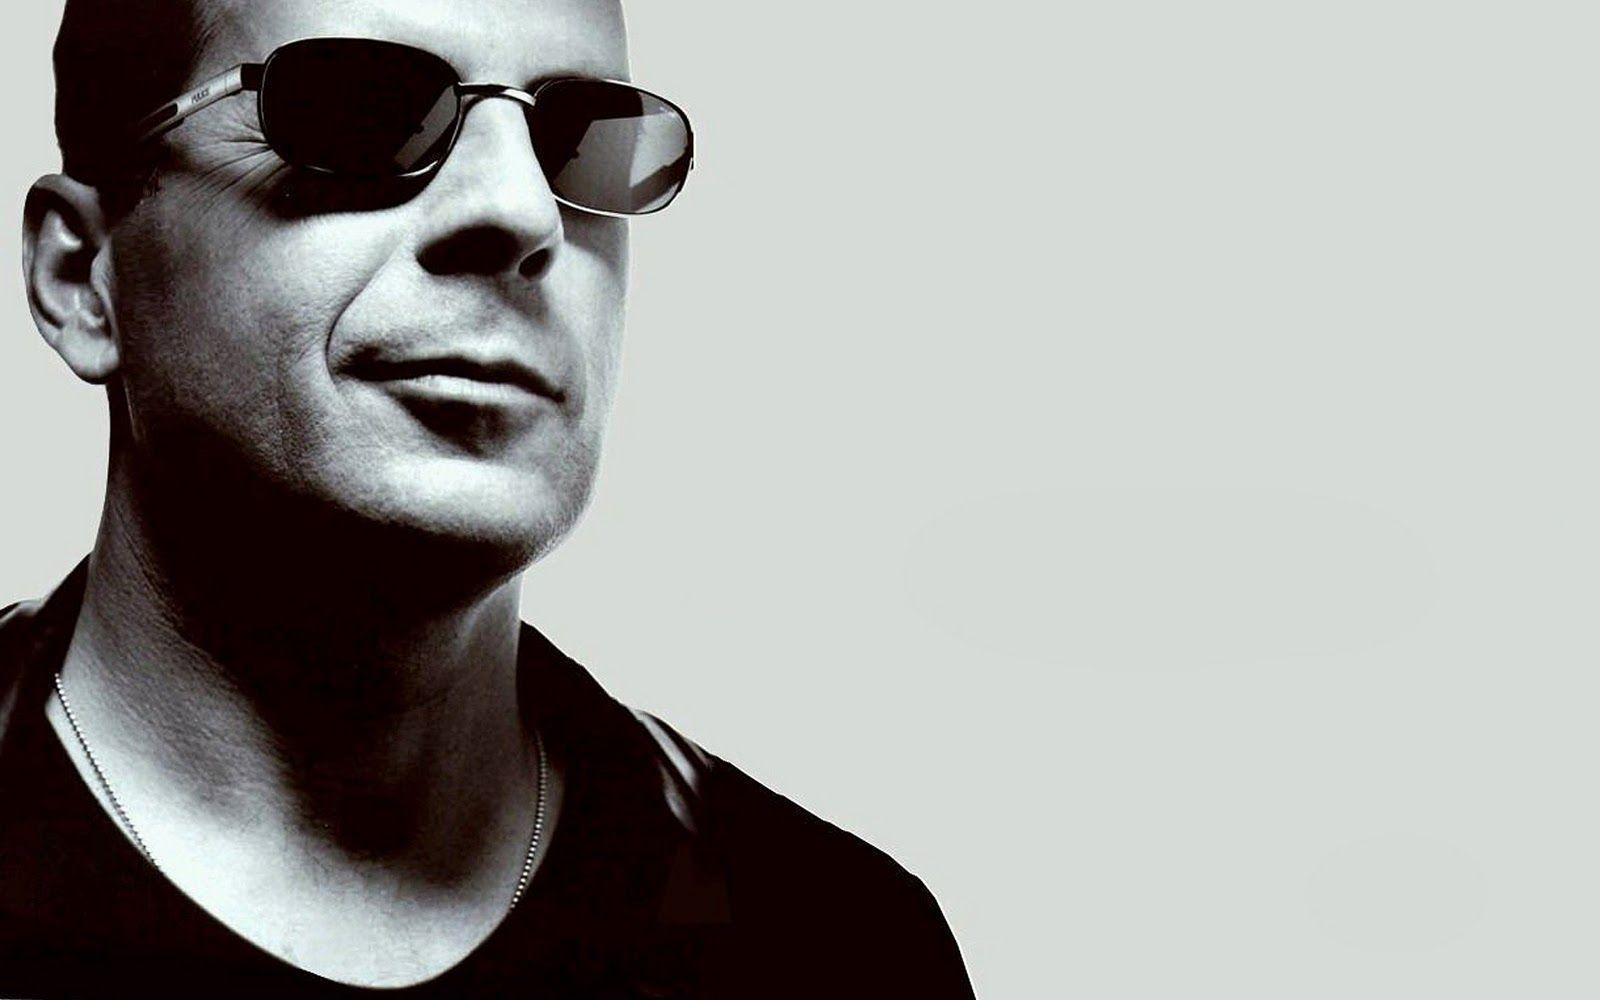 Best Desktop HD Wallpaper - Bruce Willis Wallpapers